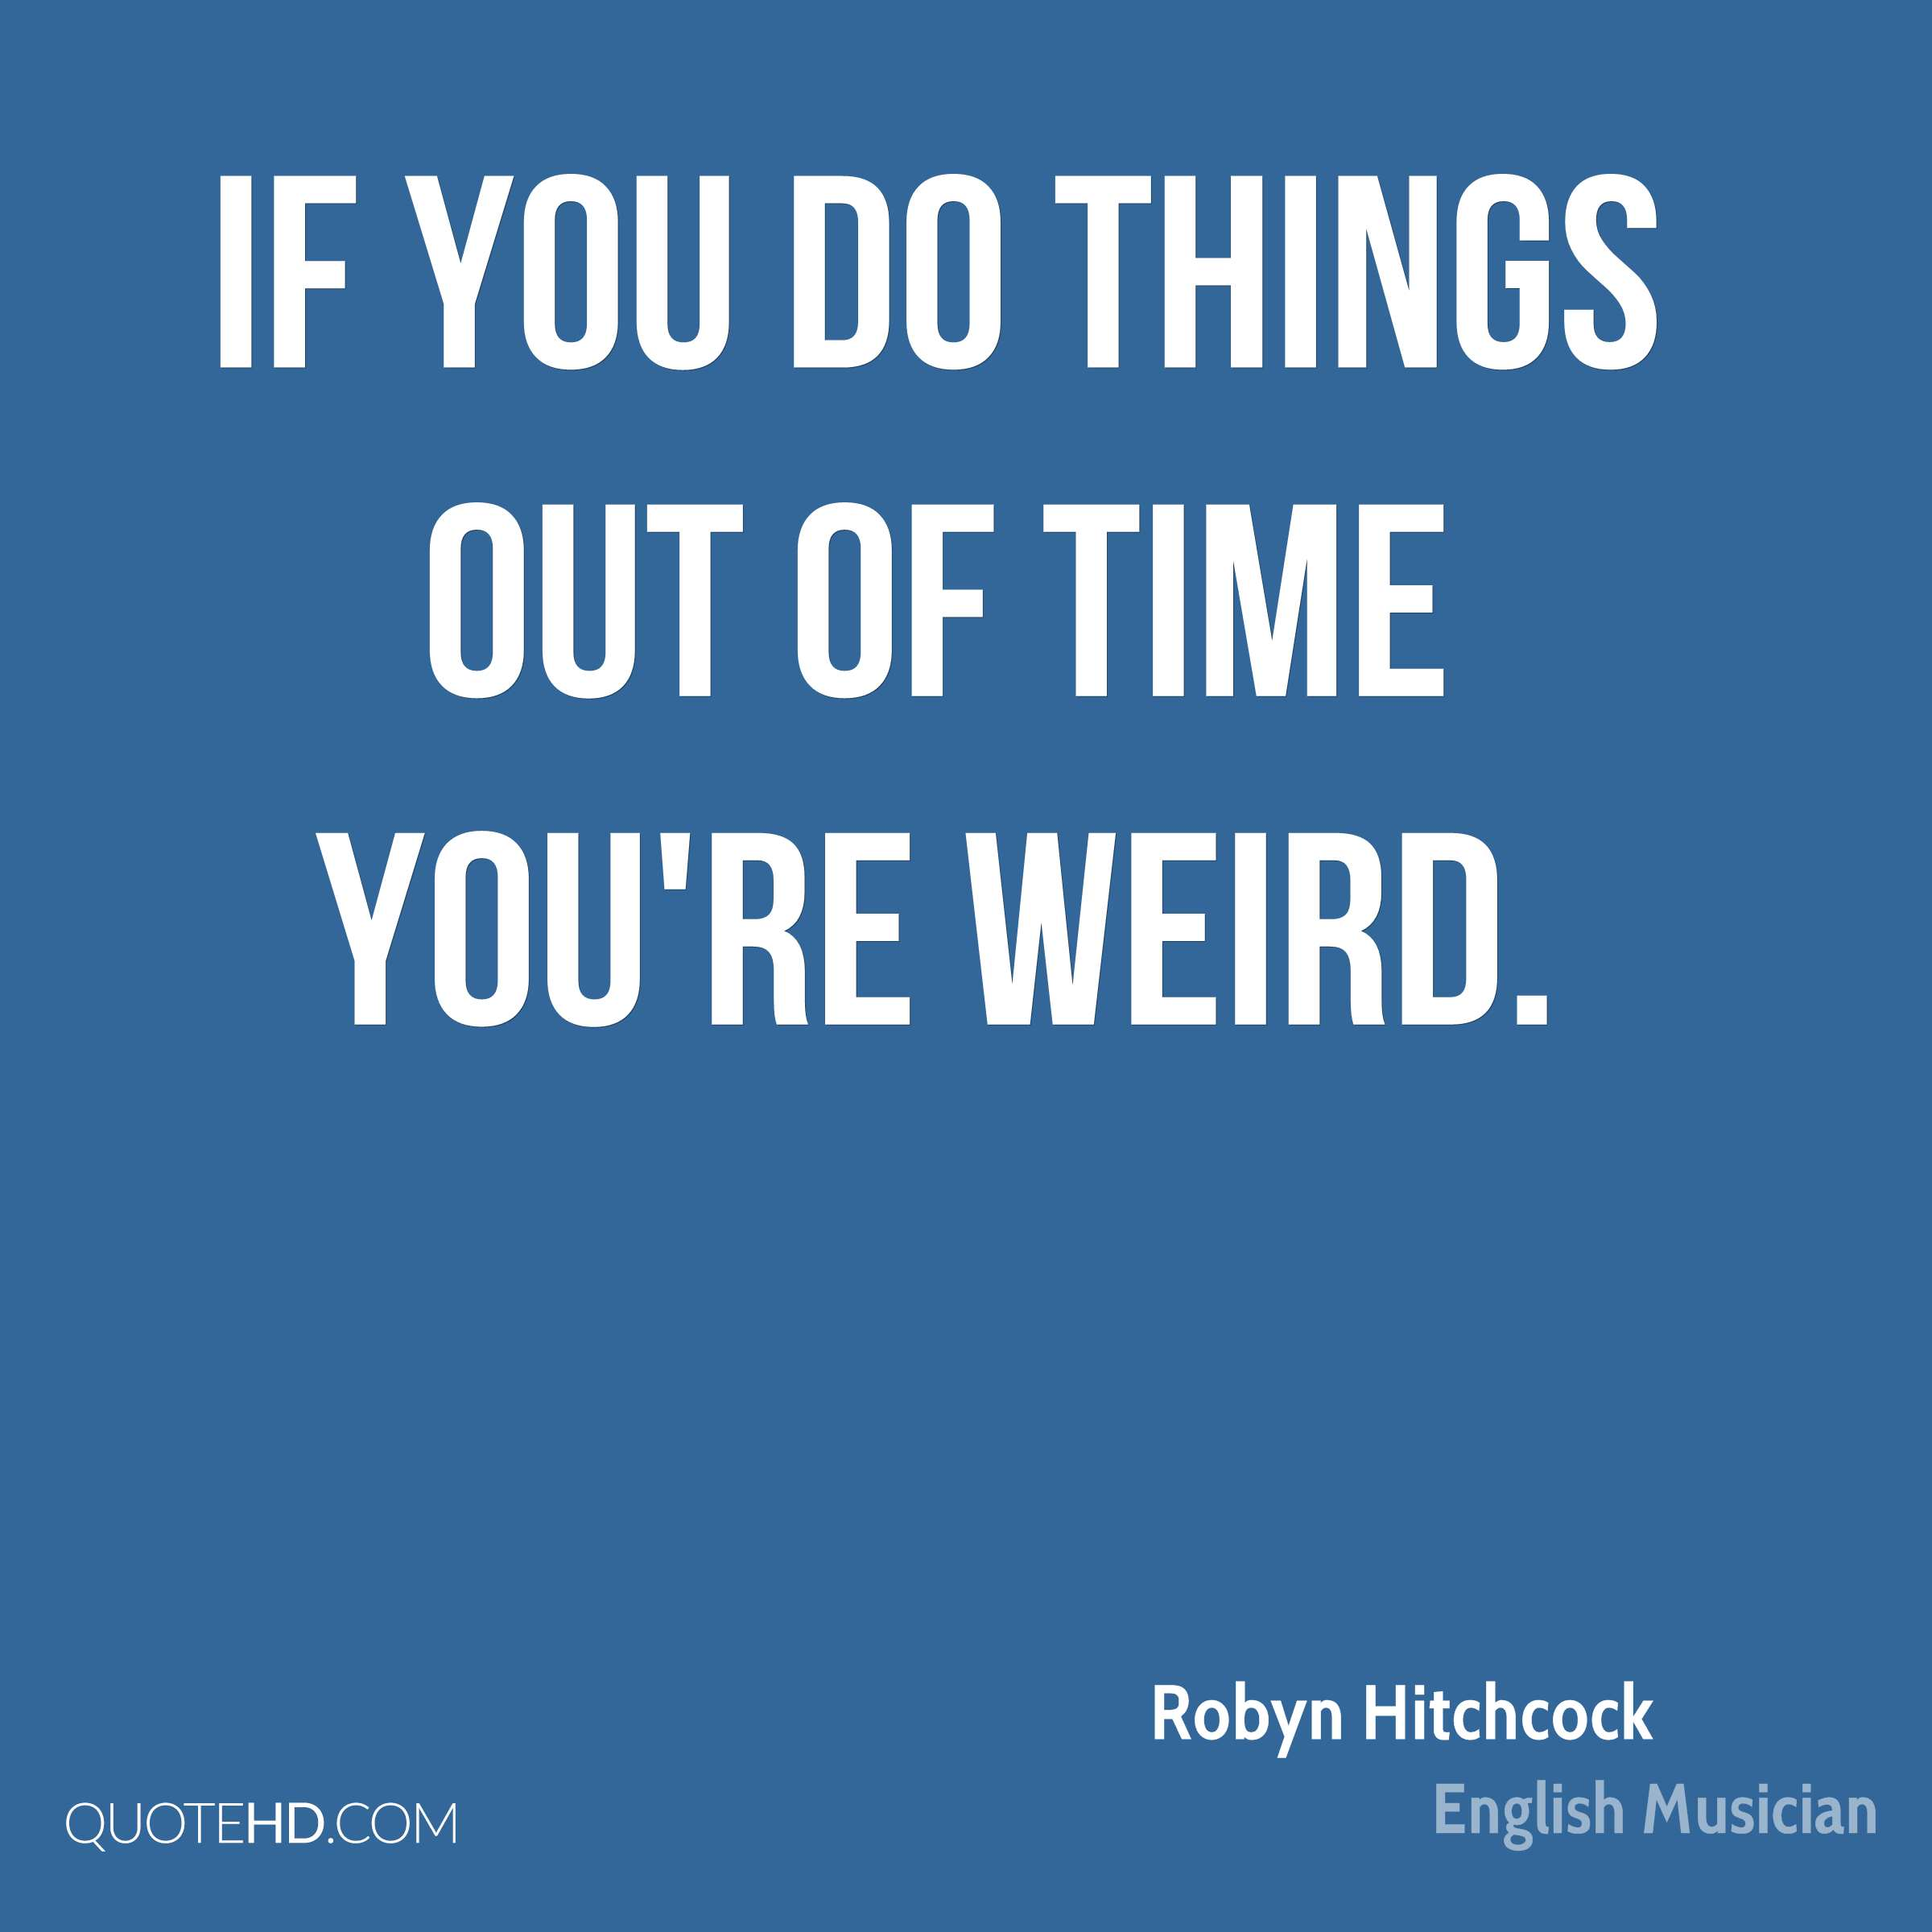 If you do things out of time you're weird.